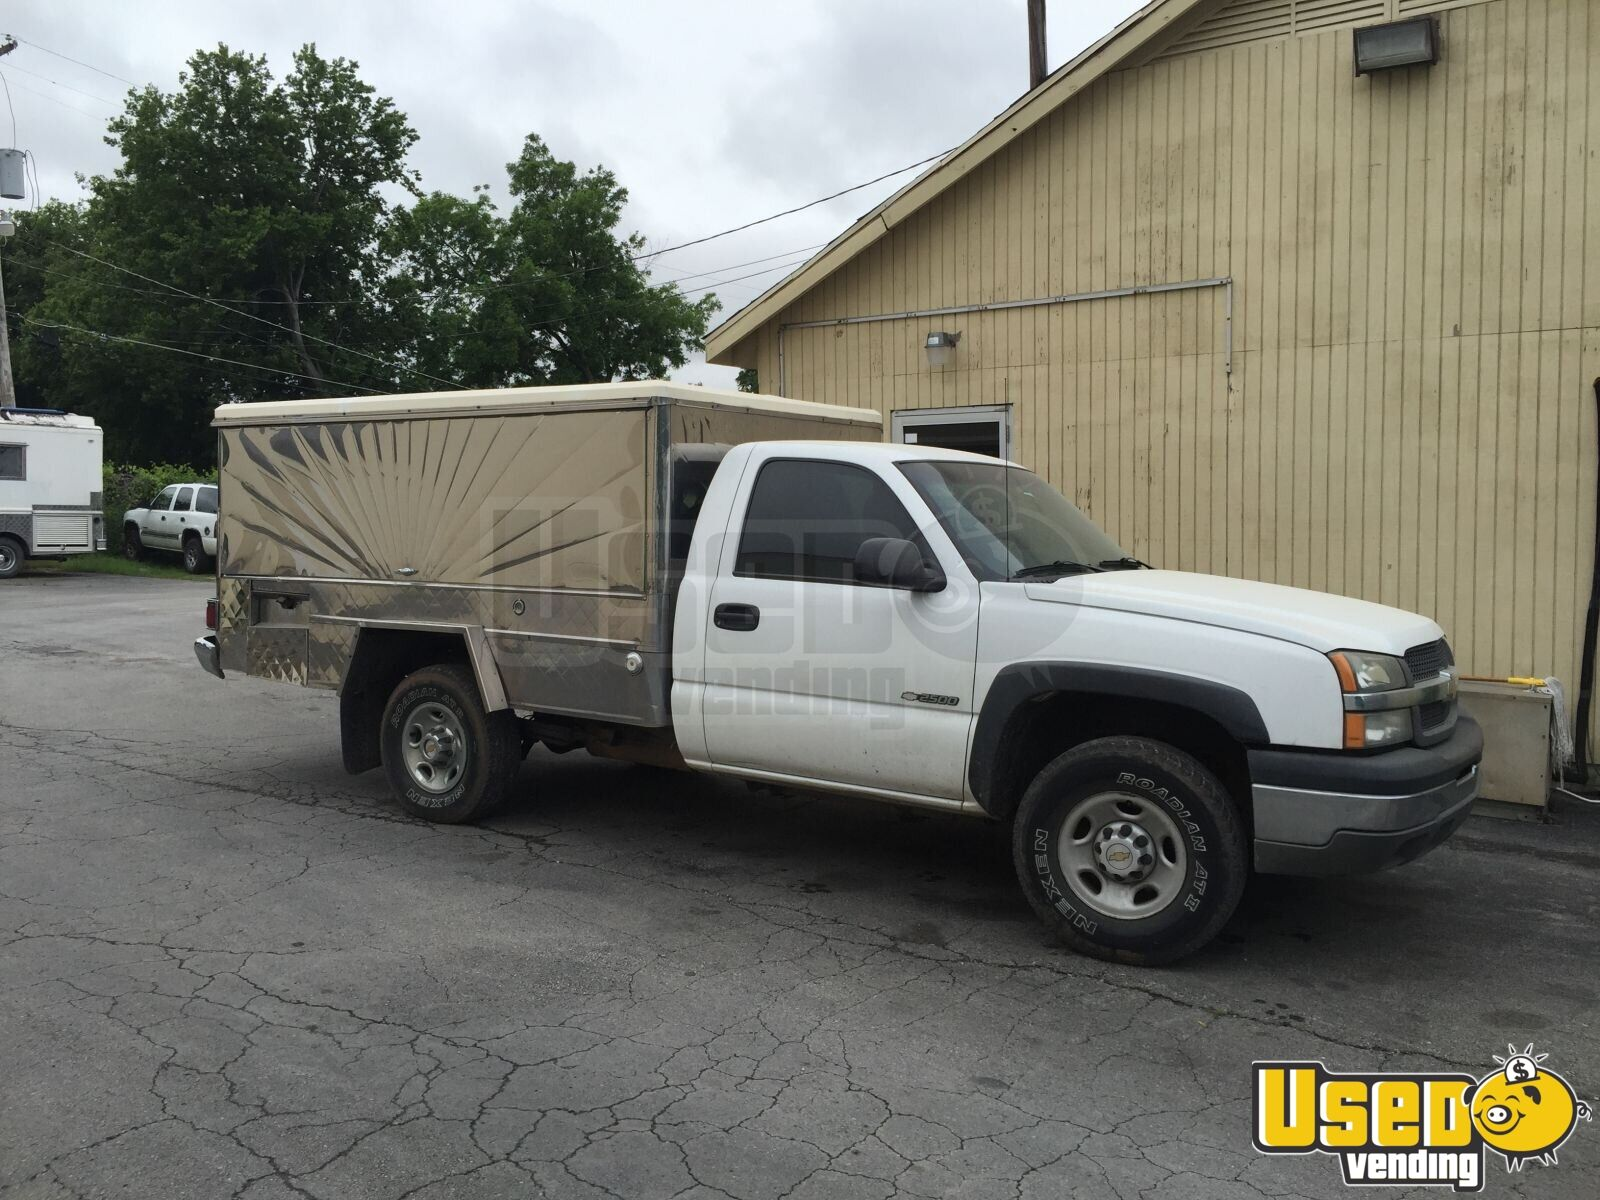 Trucks For Sale: Canteen Truck For Sale In Oklahoma